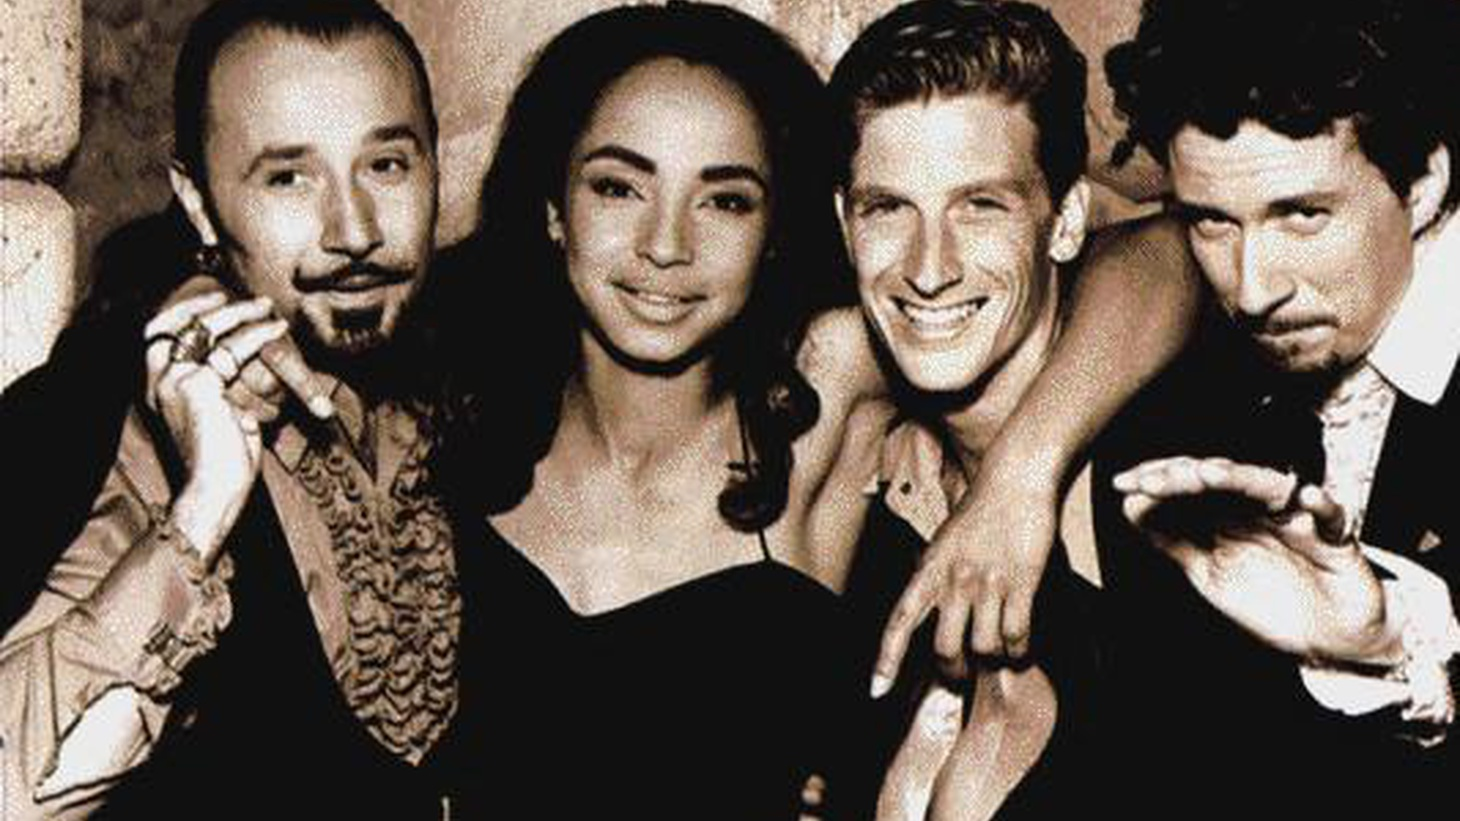 Distinguished band mates Andrew Hale and Stuart Matthewman of Sade stop by to talk about the past, present, and possible future of their illustrious careers as long time collaborators with Ms Adu.